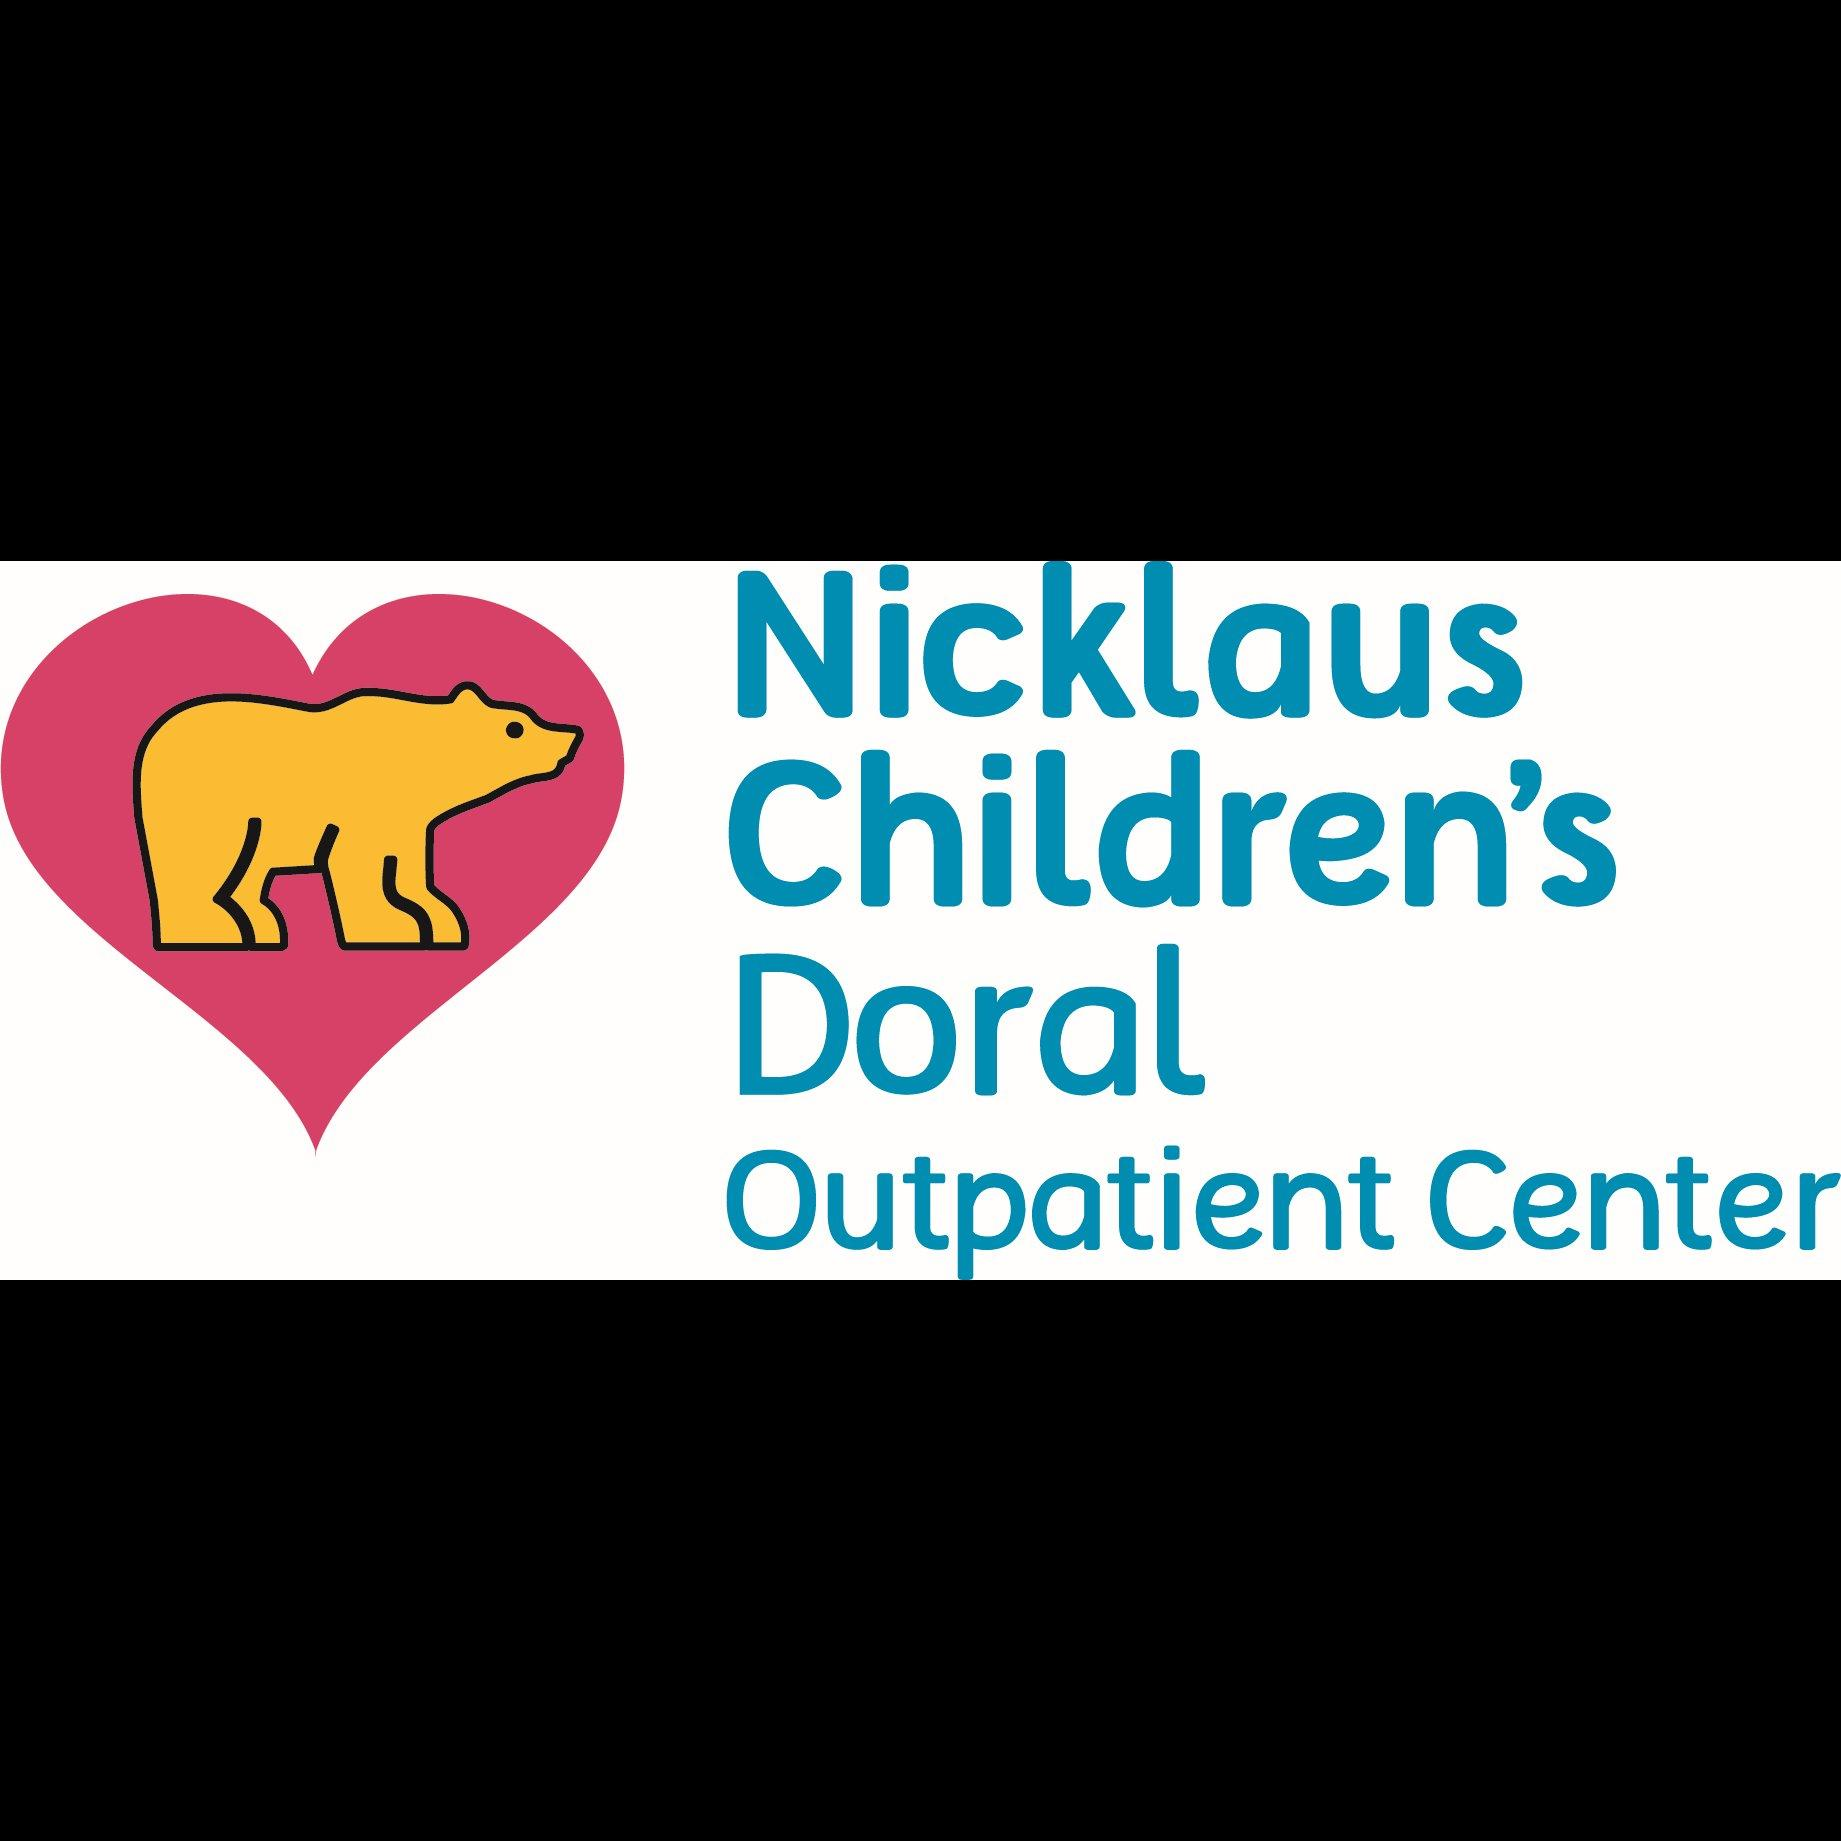 Nicklaus Children's Doral Outpatient Center